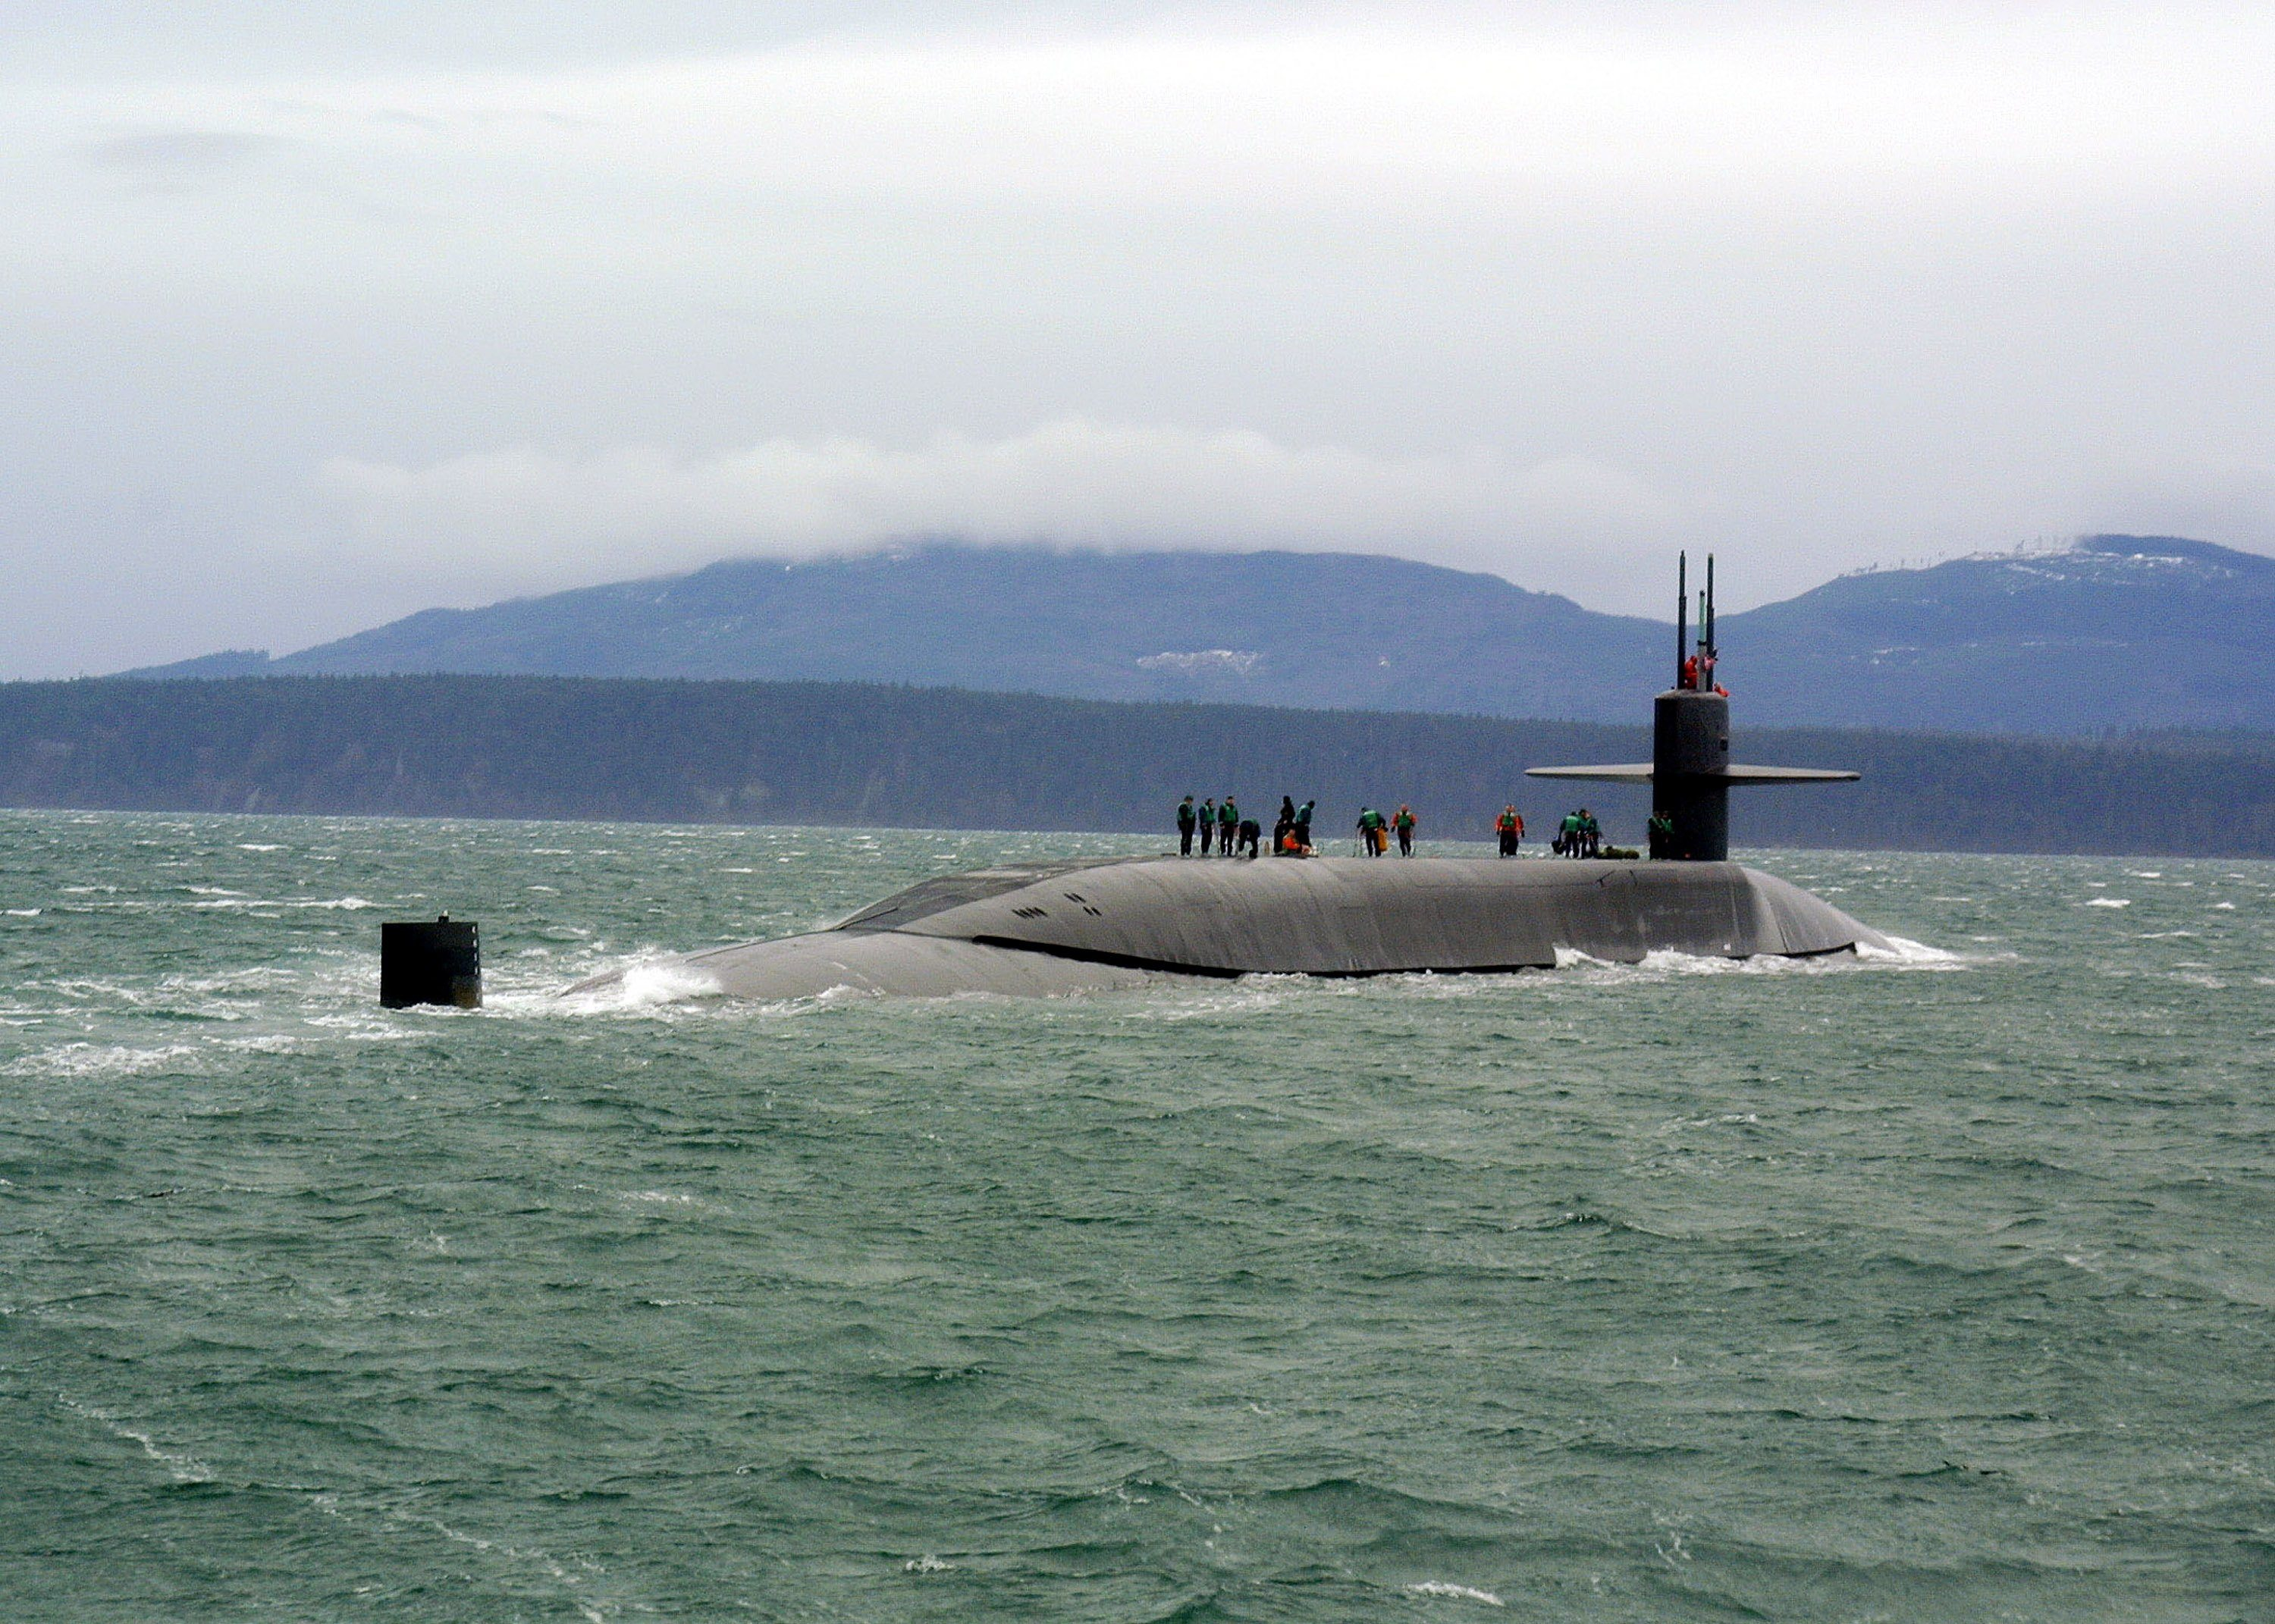 The guided-missile submarine USS Ohio in the Puget Sound